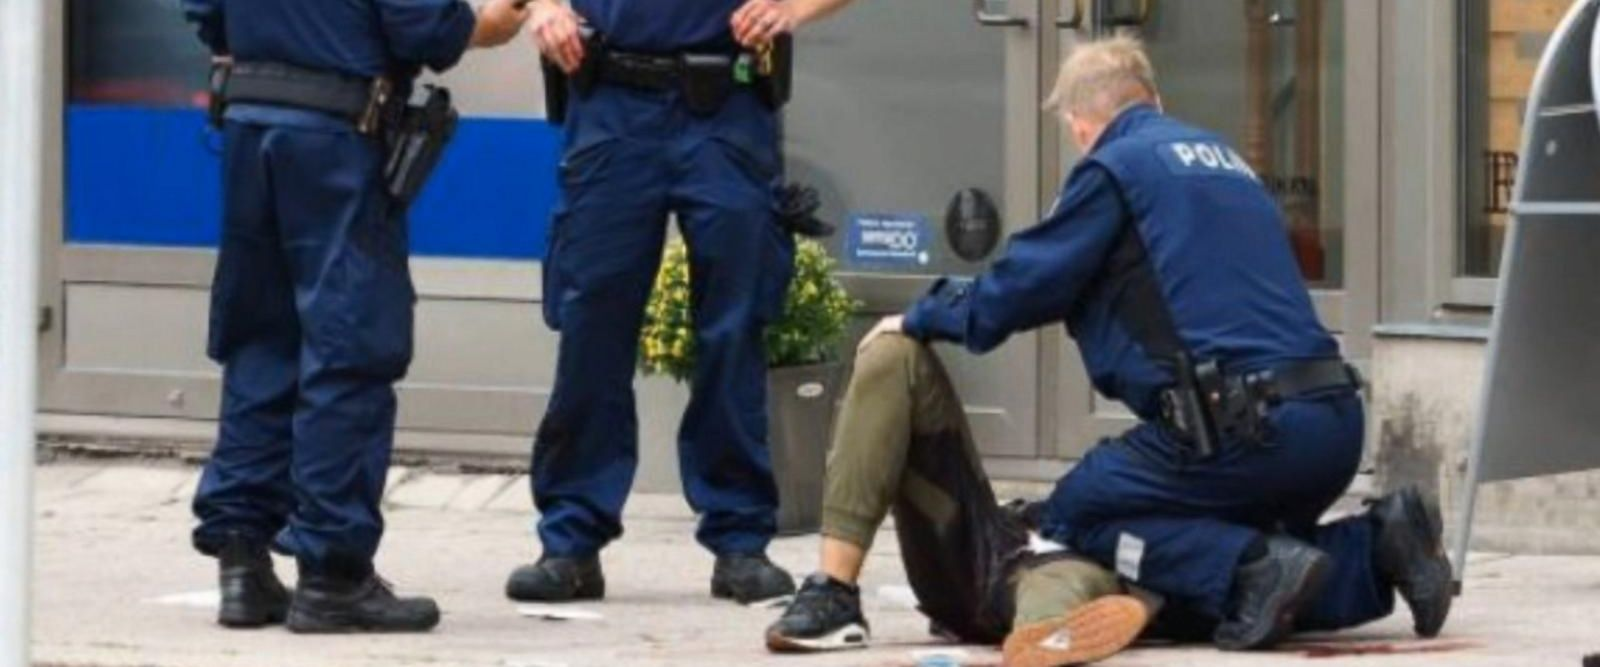 VIDEO: One person in custody after deadly stabbing in Finland